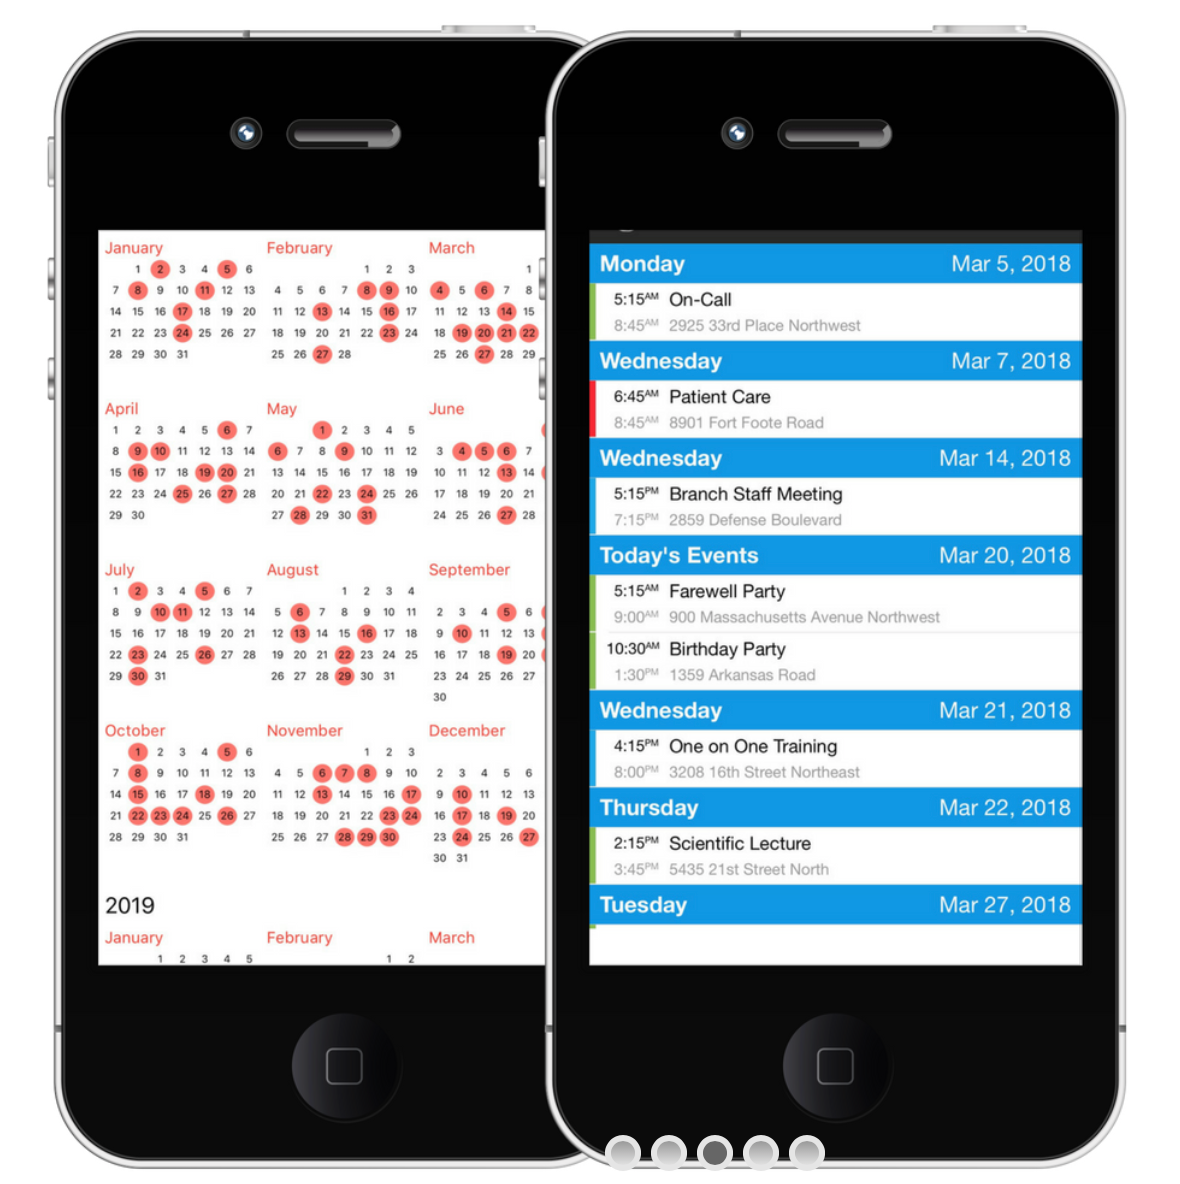 The uSked mobile app can be used to view upcoming assignments